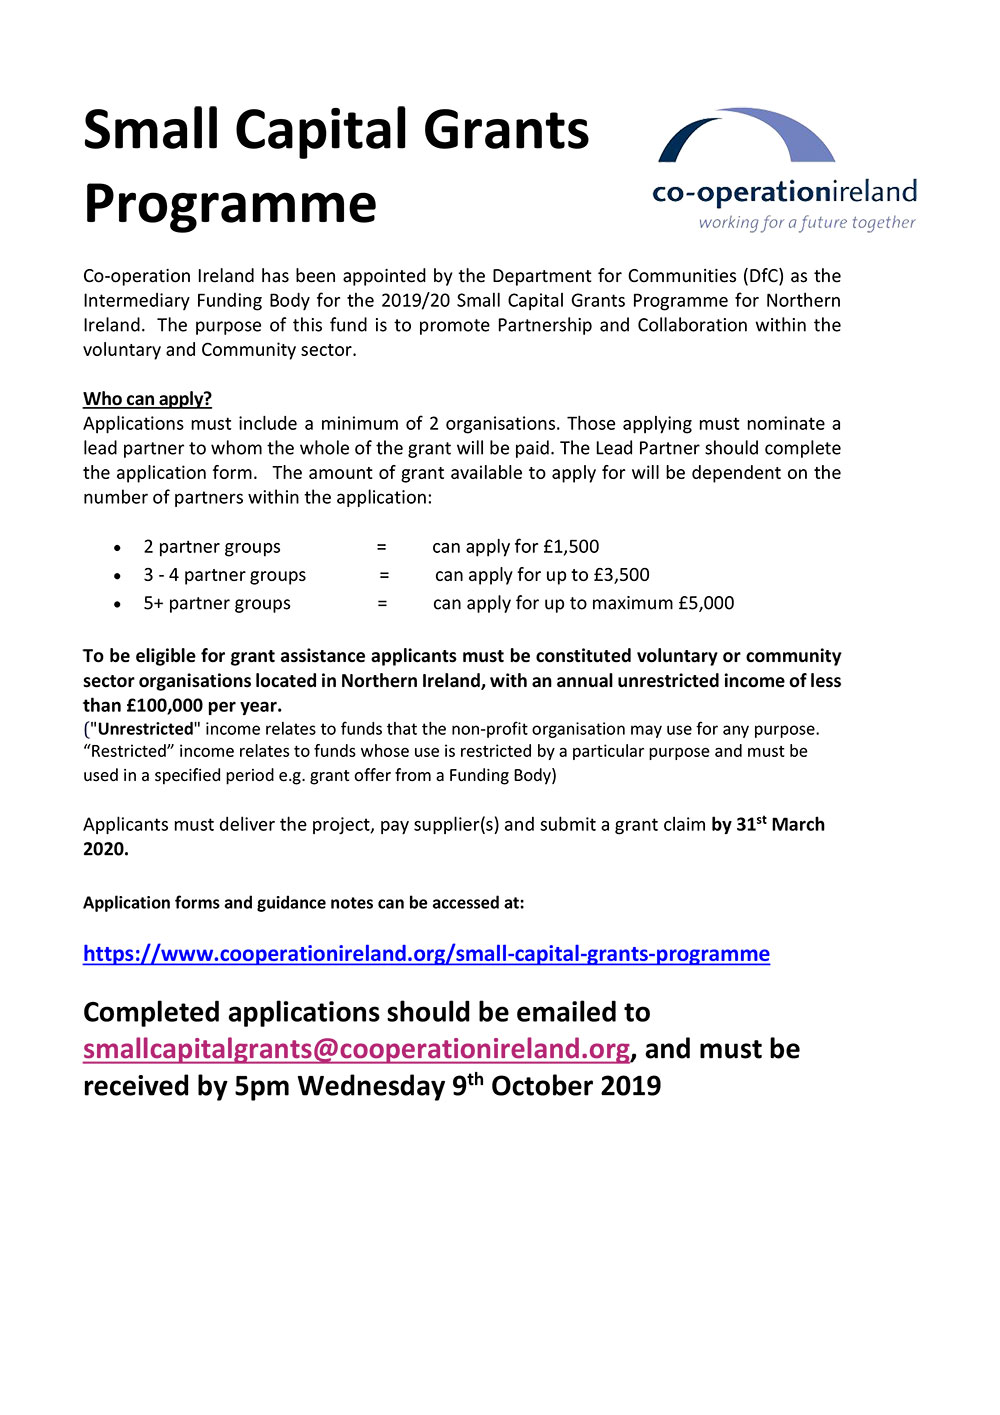 Small Capital Grants Programme